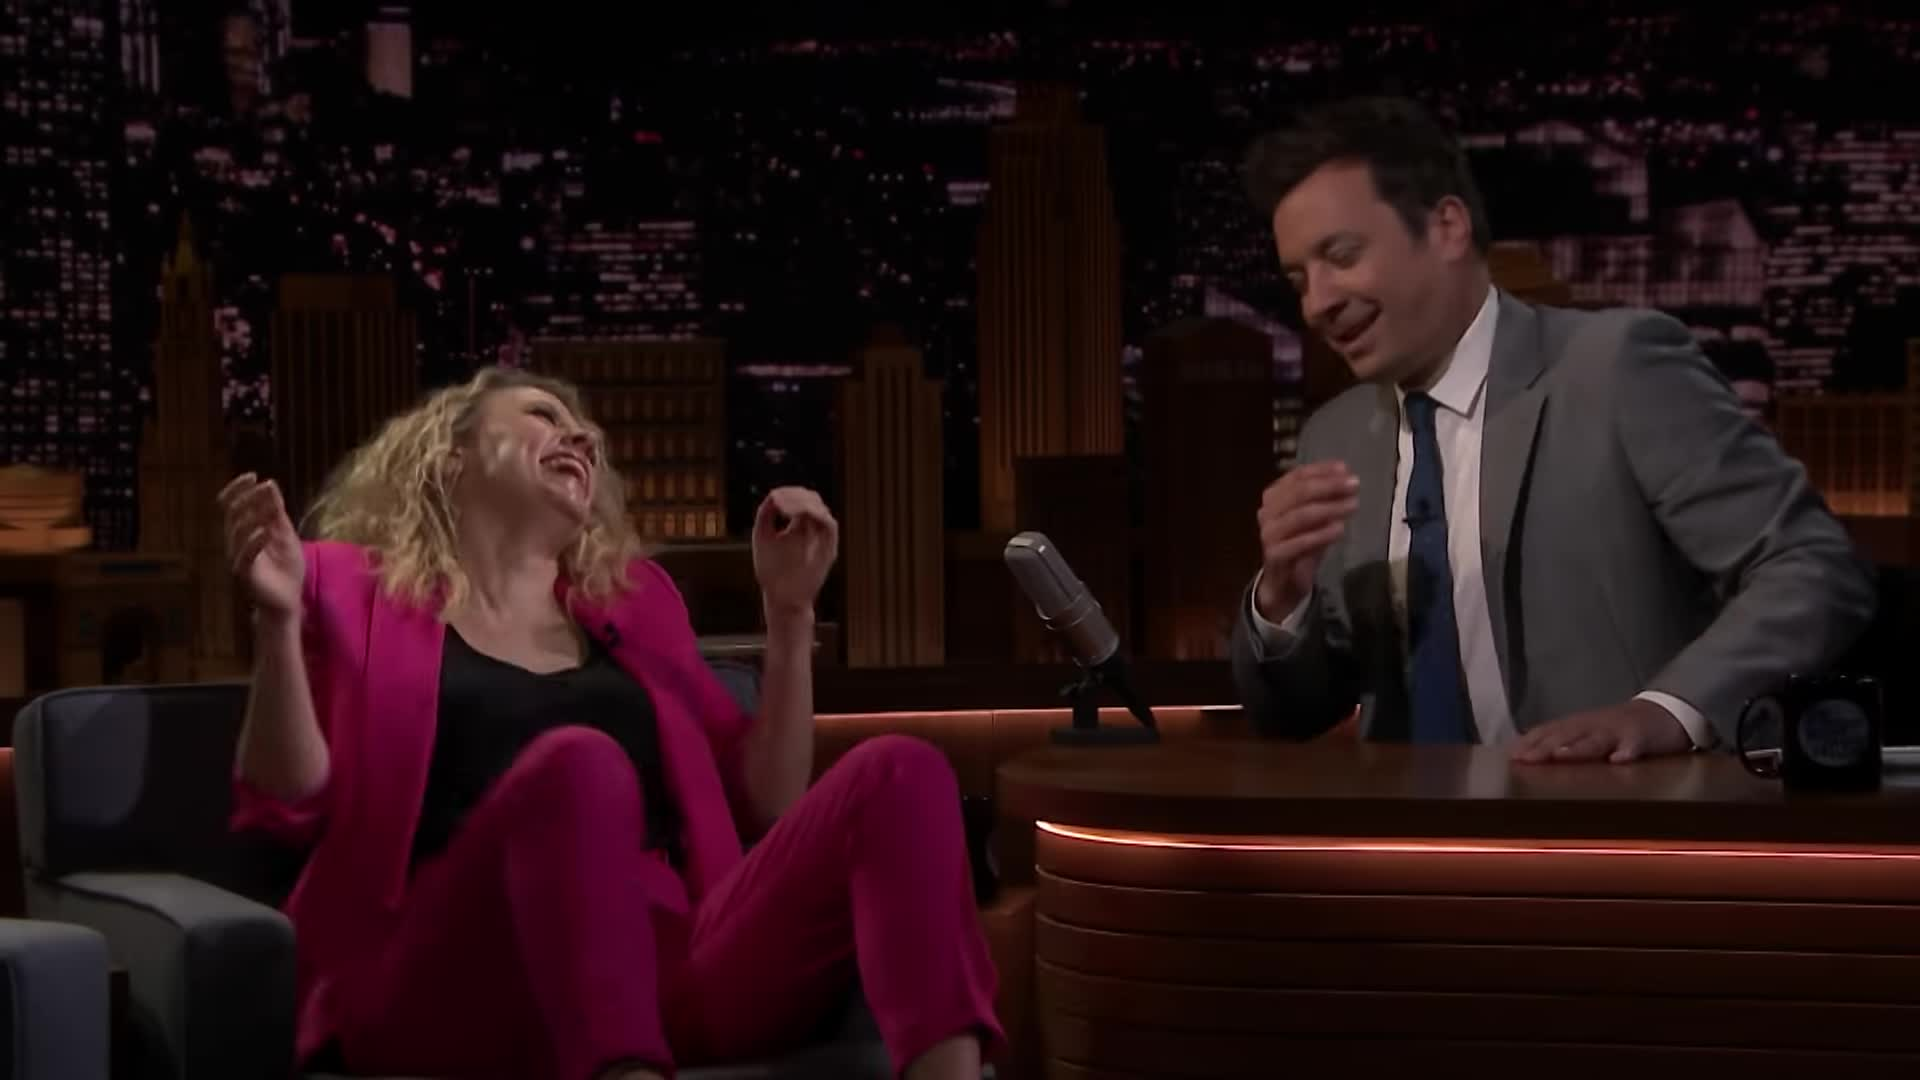 Funny, I'm dying, Jimmy Fallon, Kate McKinnon, Kate McKinnon Laughing, Slow Turn, The Tonight Show, Tiny Nod, girls in suits, guffaw, knee-slapper, ladies in suits, ladiesinsuits, women in suits, Kate McKinnon cracking up in hot pink suit GIFs